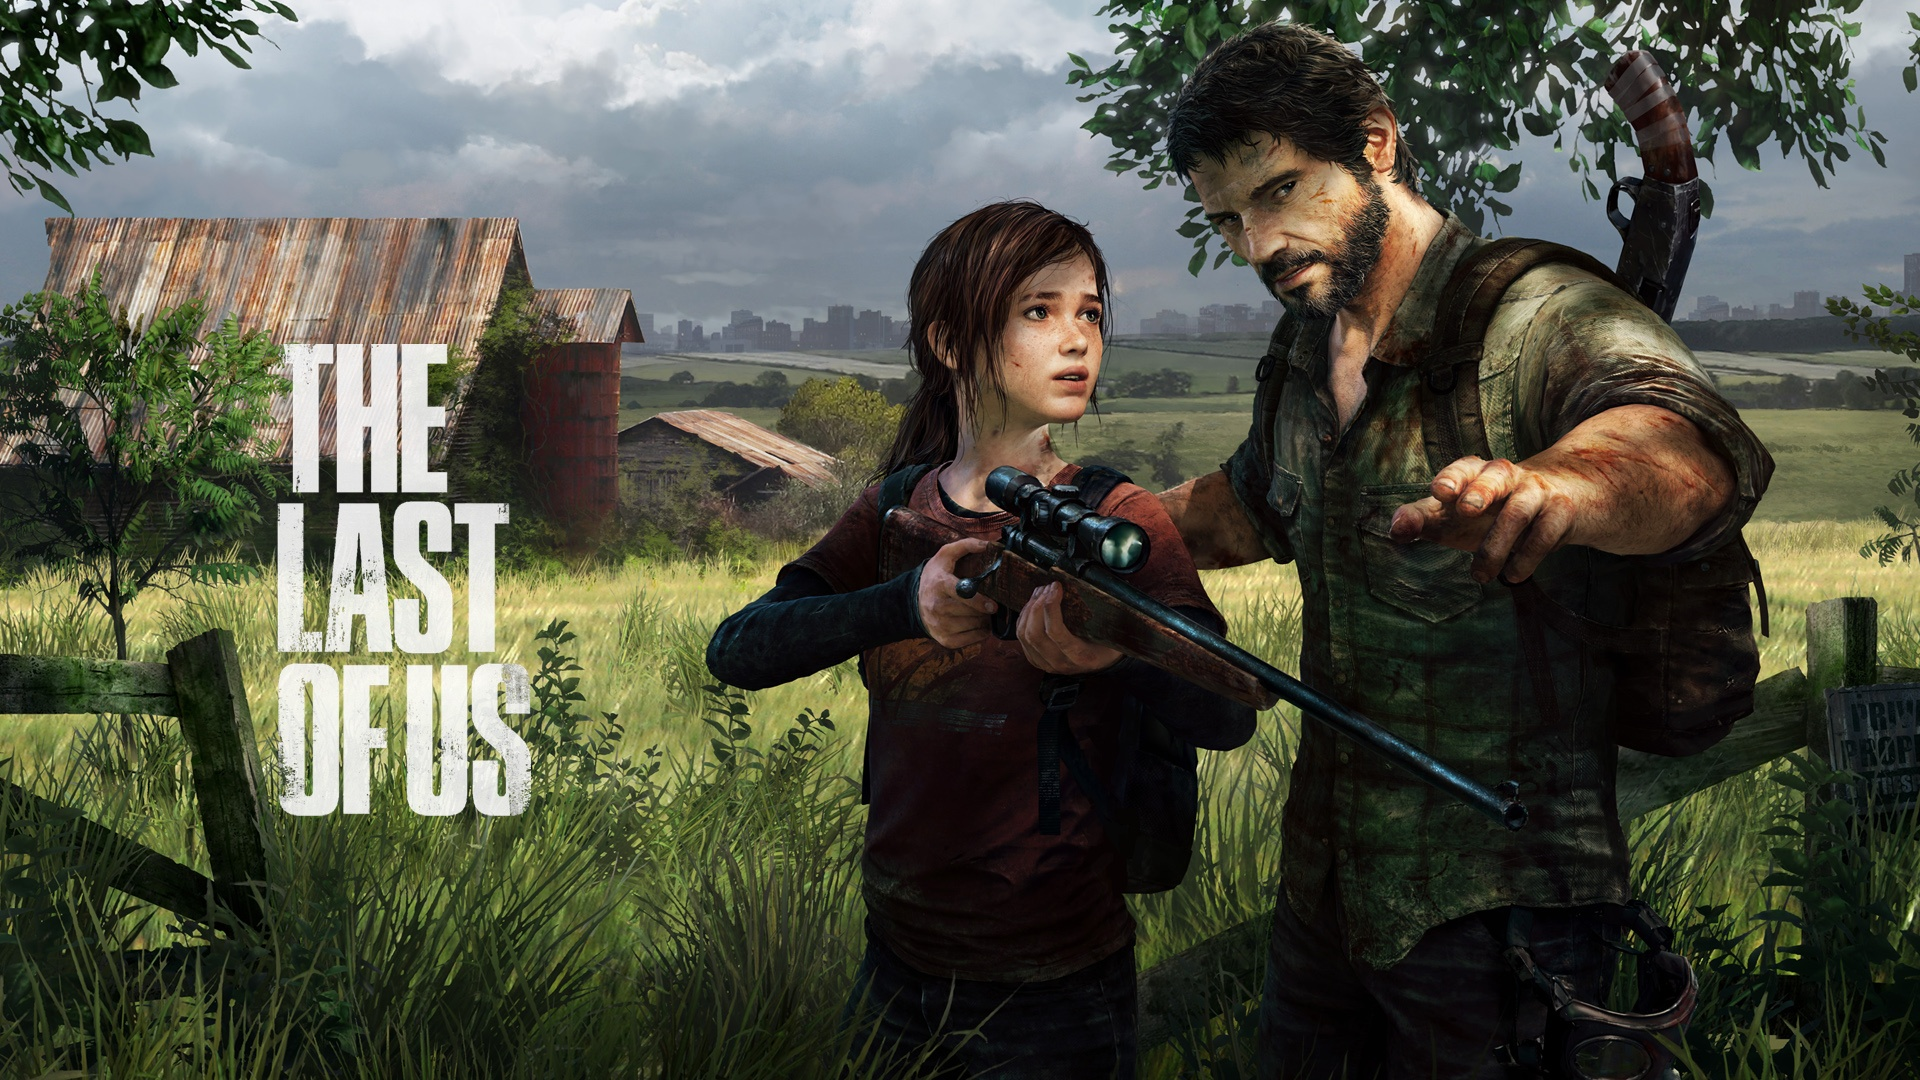 The Best Of The Last Of Us Wallpapers